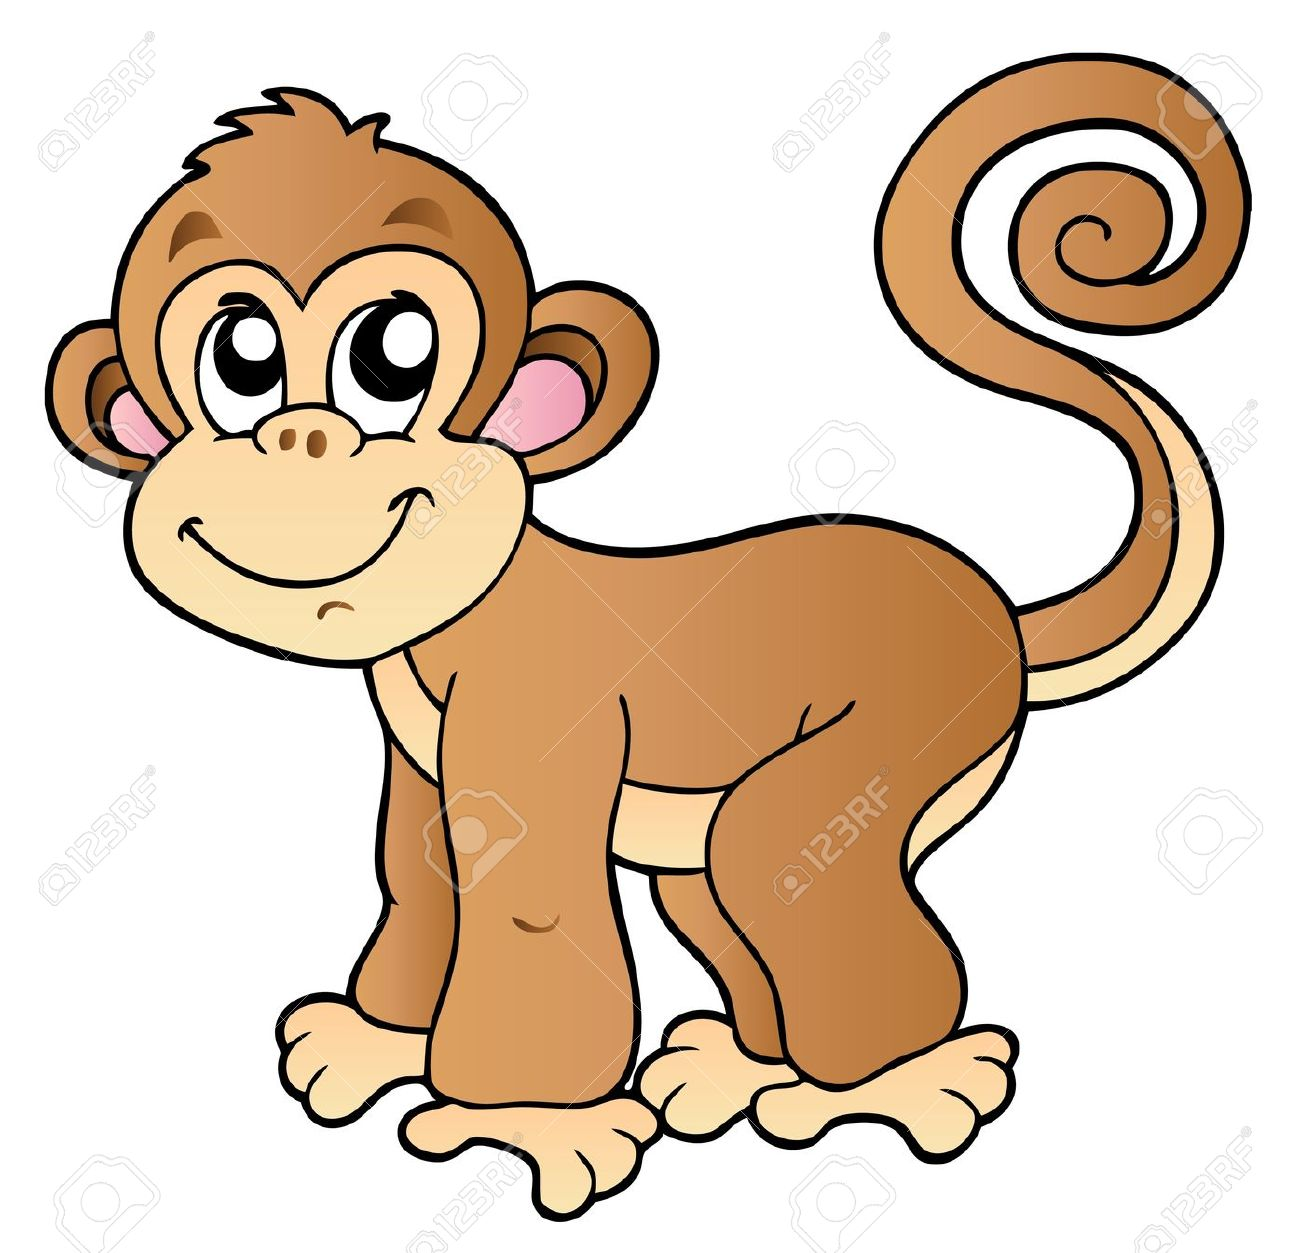 Le singe clipart vector free library Clip Art 11 - Sonia.1 - Picasa Web Albums | Cute Clipart ... vector free library